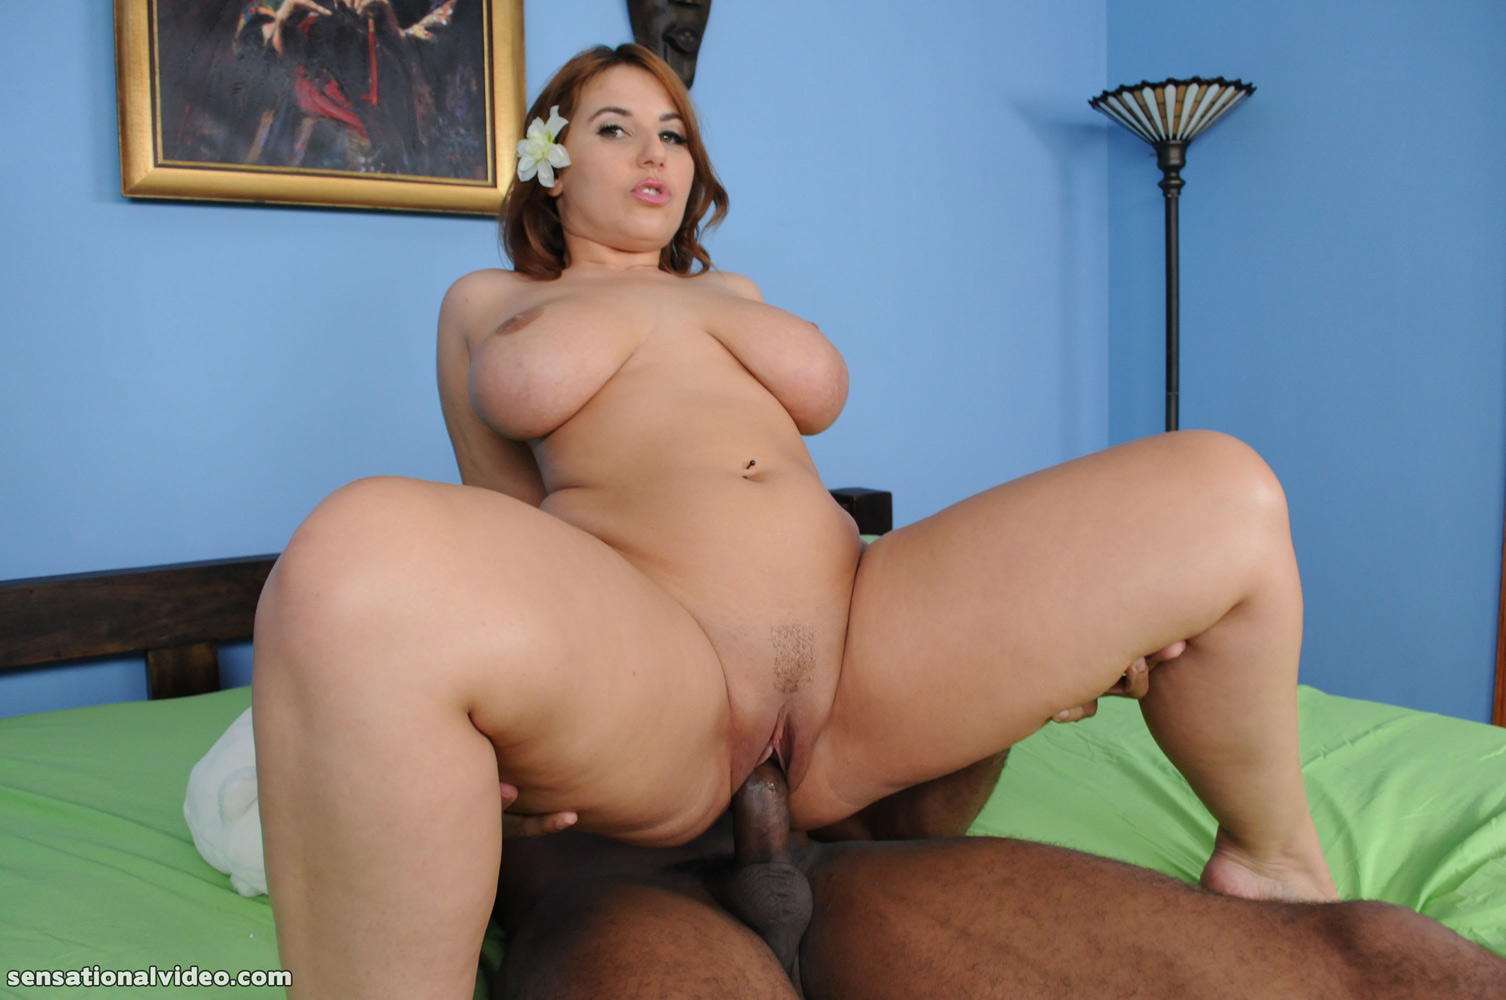 Lexxi Lockhart Sex Photo Bbw Fat Bgb Lexxxi Lockhart